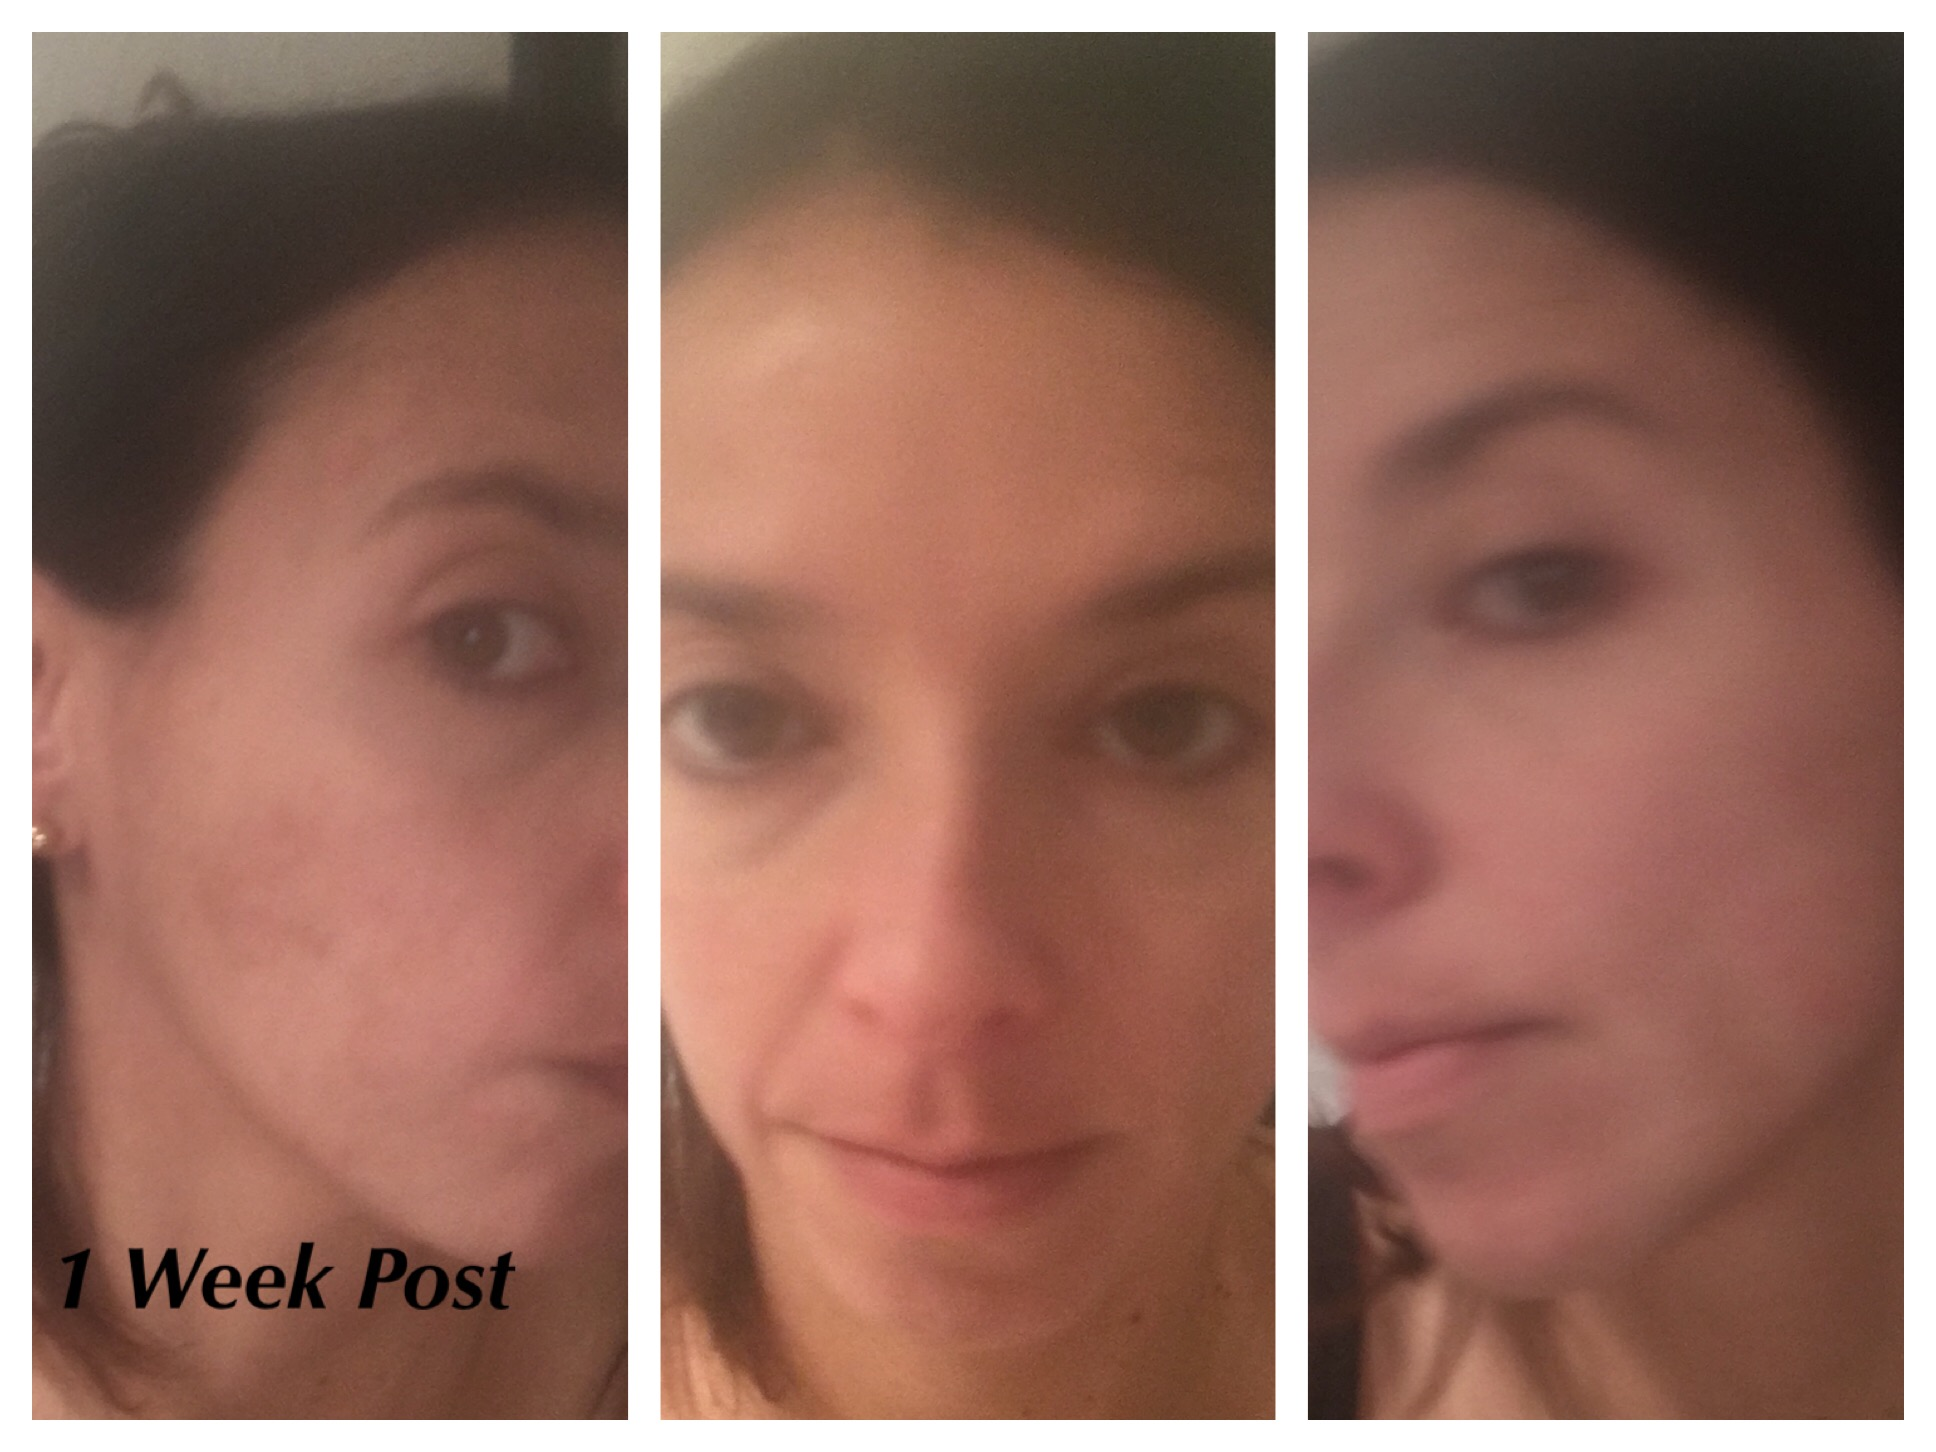 Happy with the results. All my skin has peeled. I found that my pores were minimized and the peel helped to erase fine lines and wrinkles. VI Peel definitely helped lighten my pigmentation.